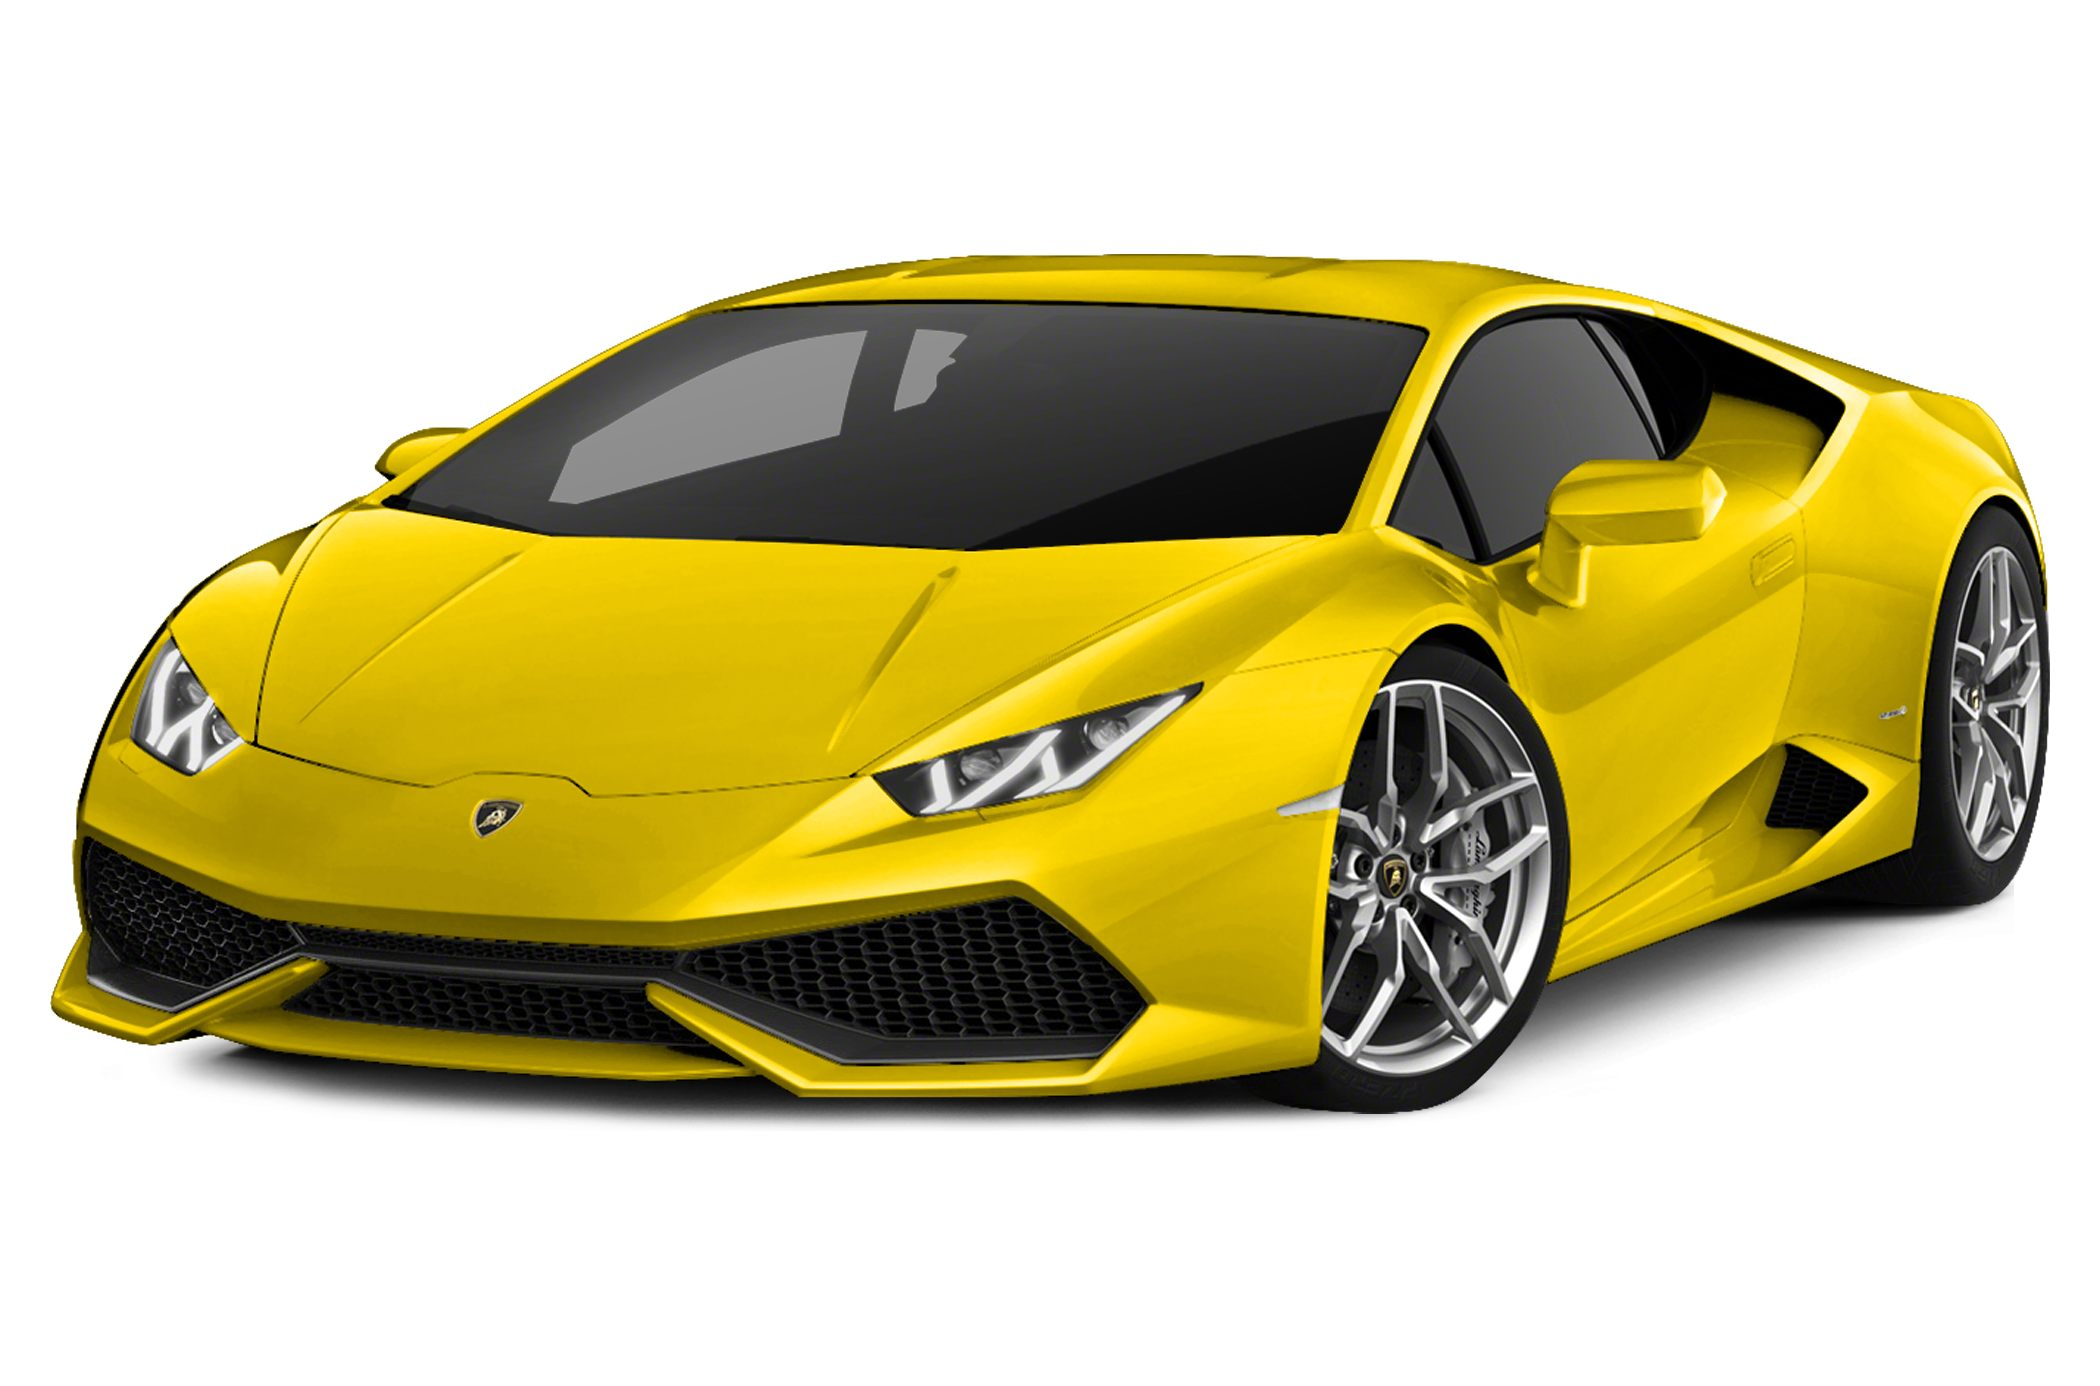 This Is The Fully Uncovered Lamborghini Huracan